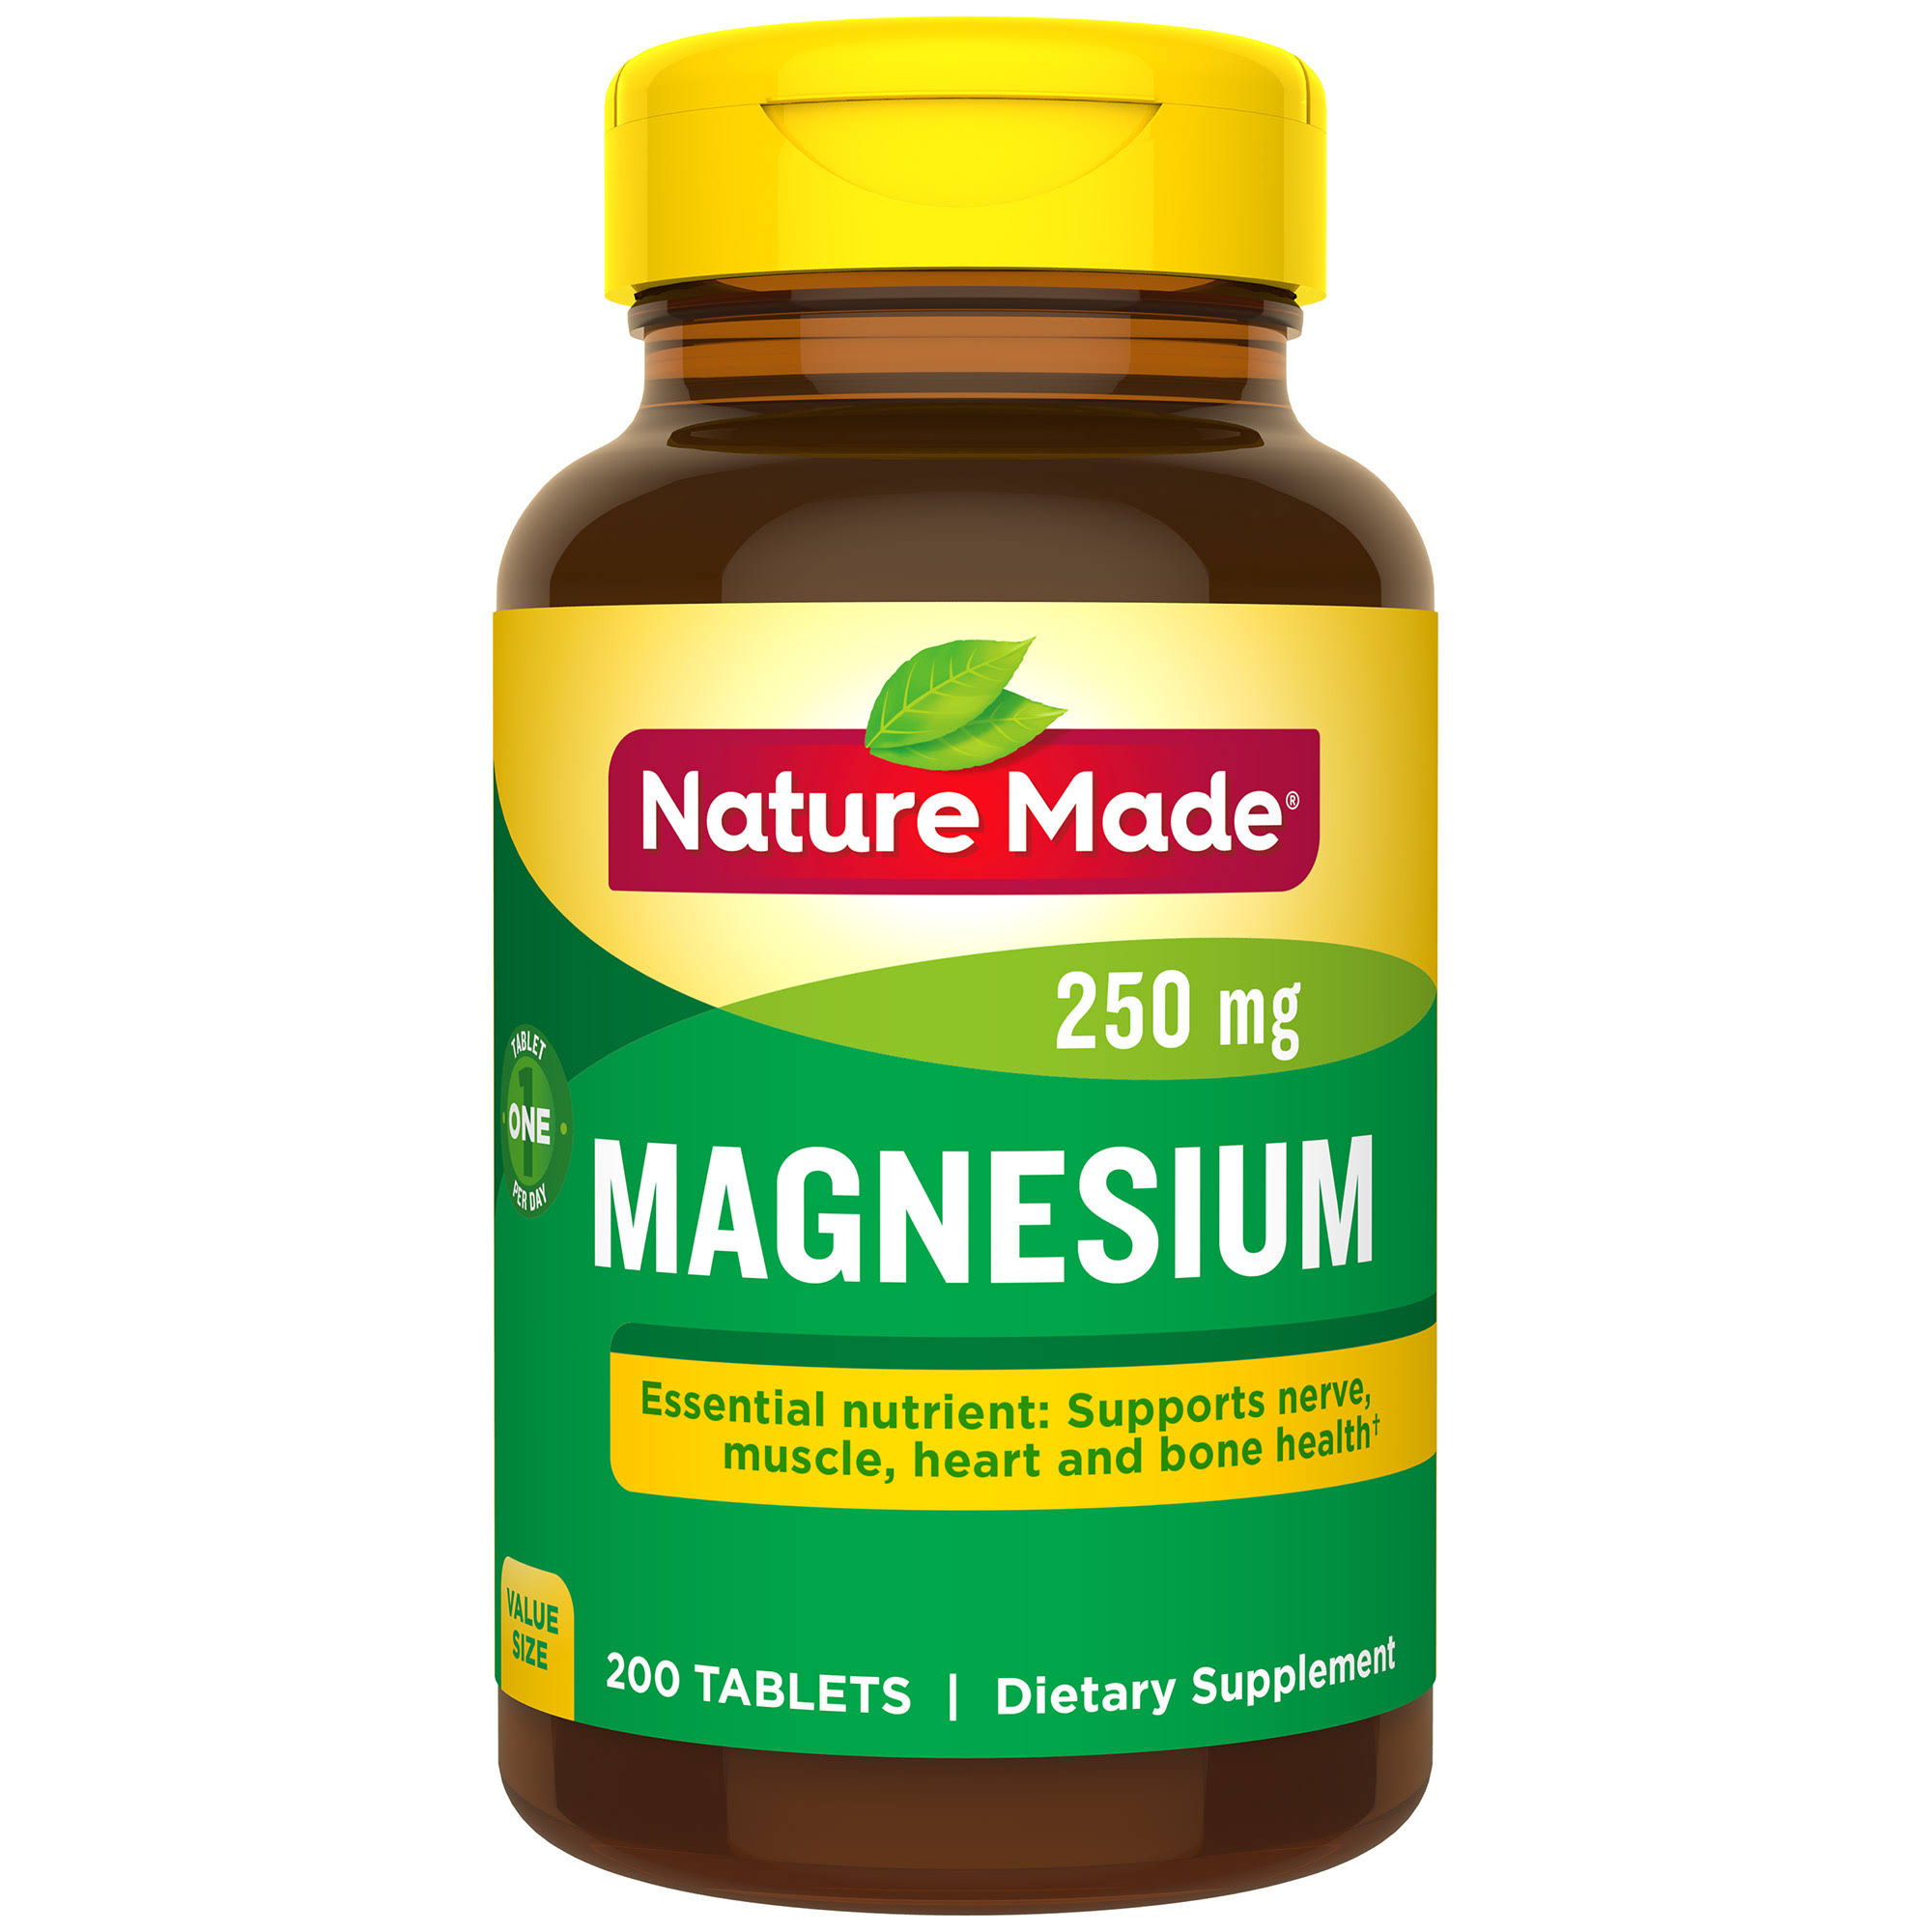 Nature Made Magnesium Supplement - 250mg, 200ct